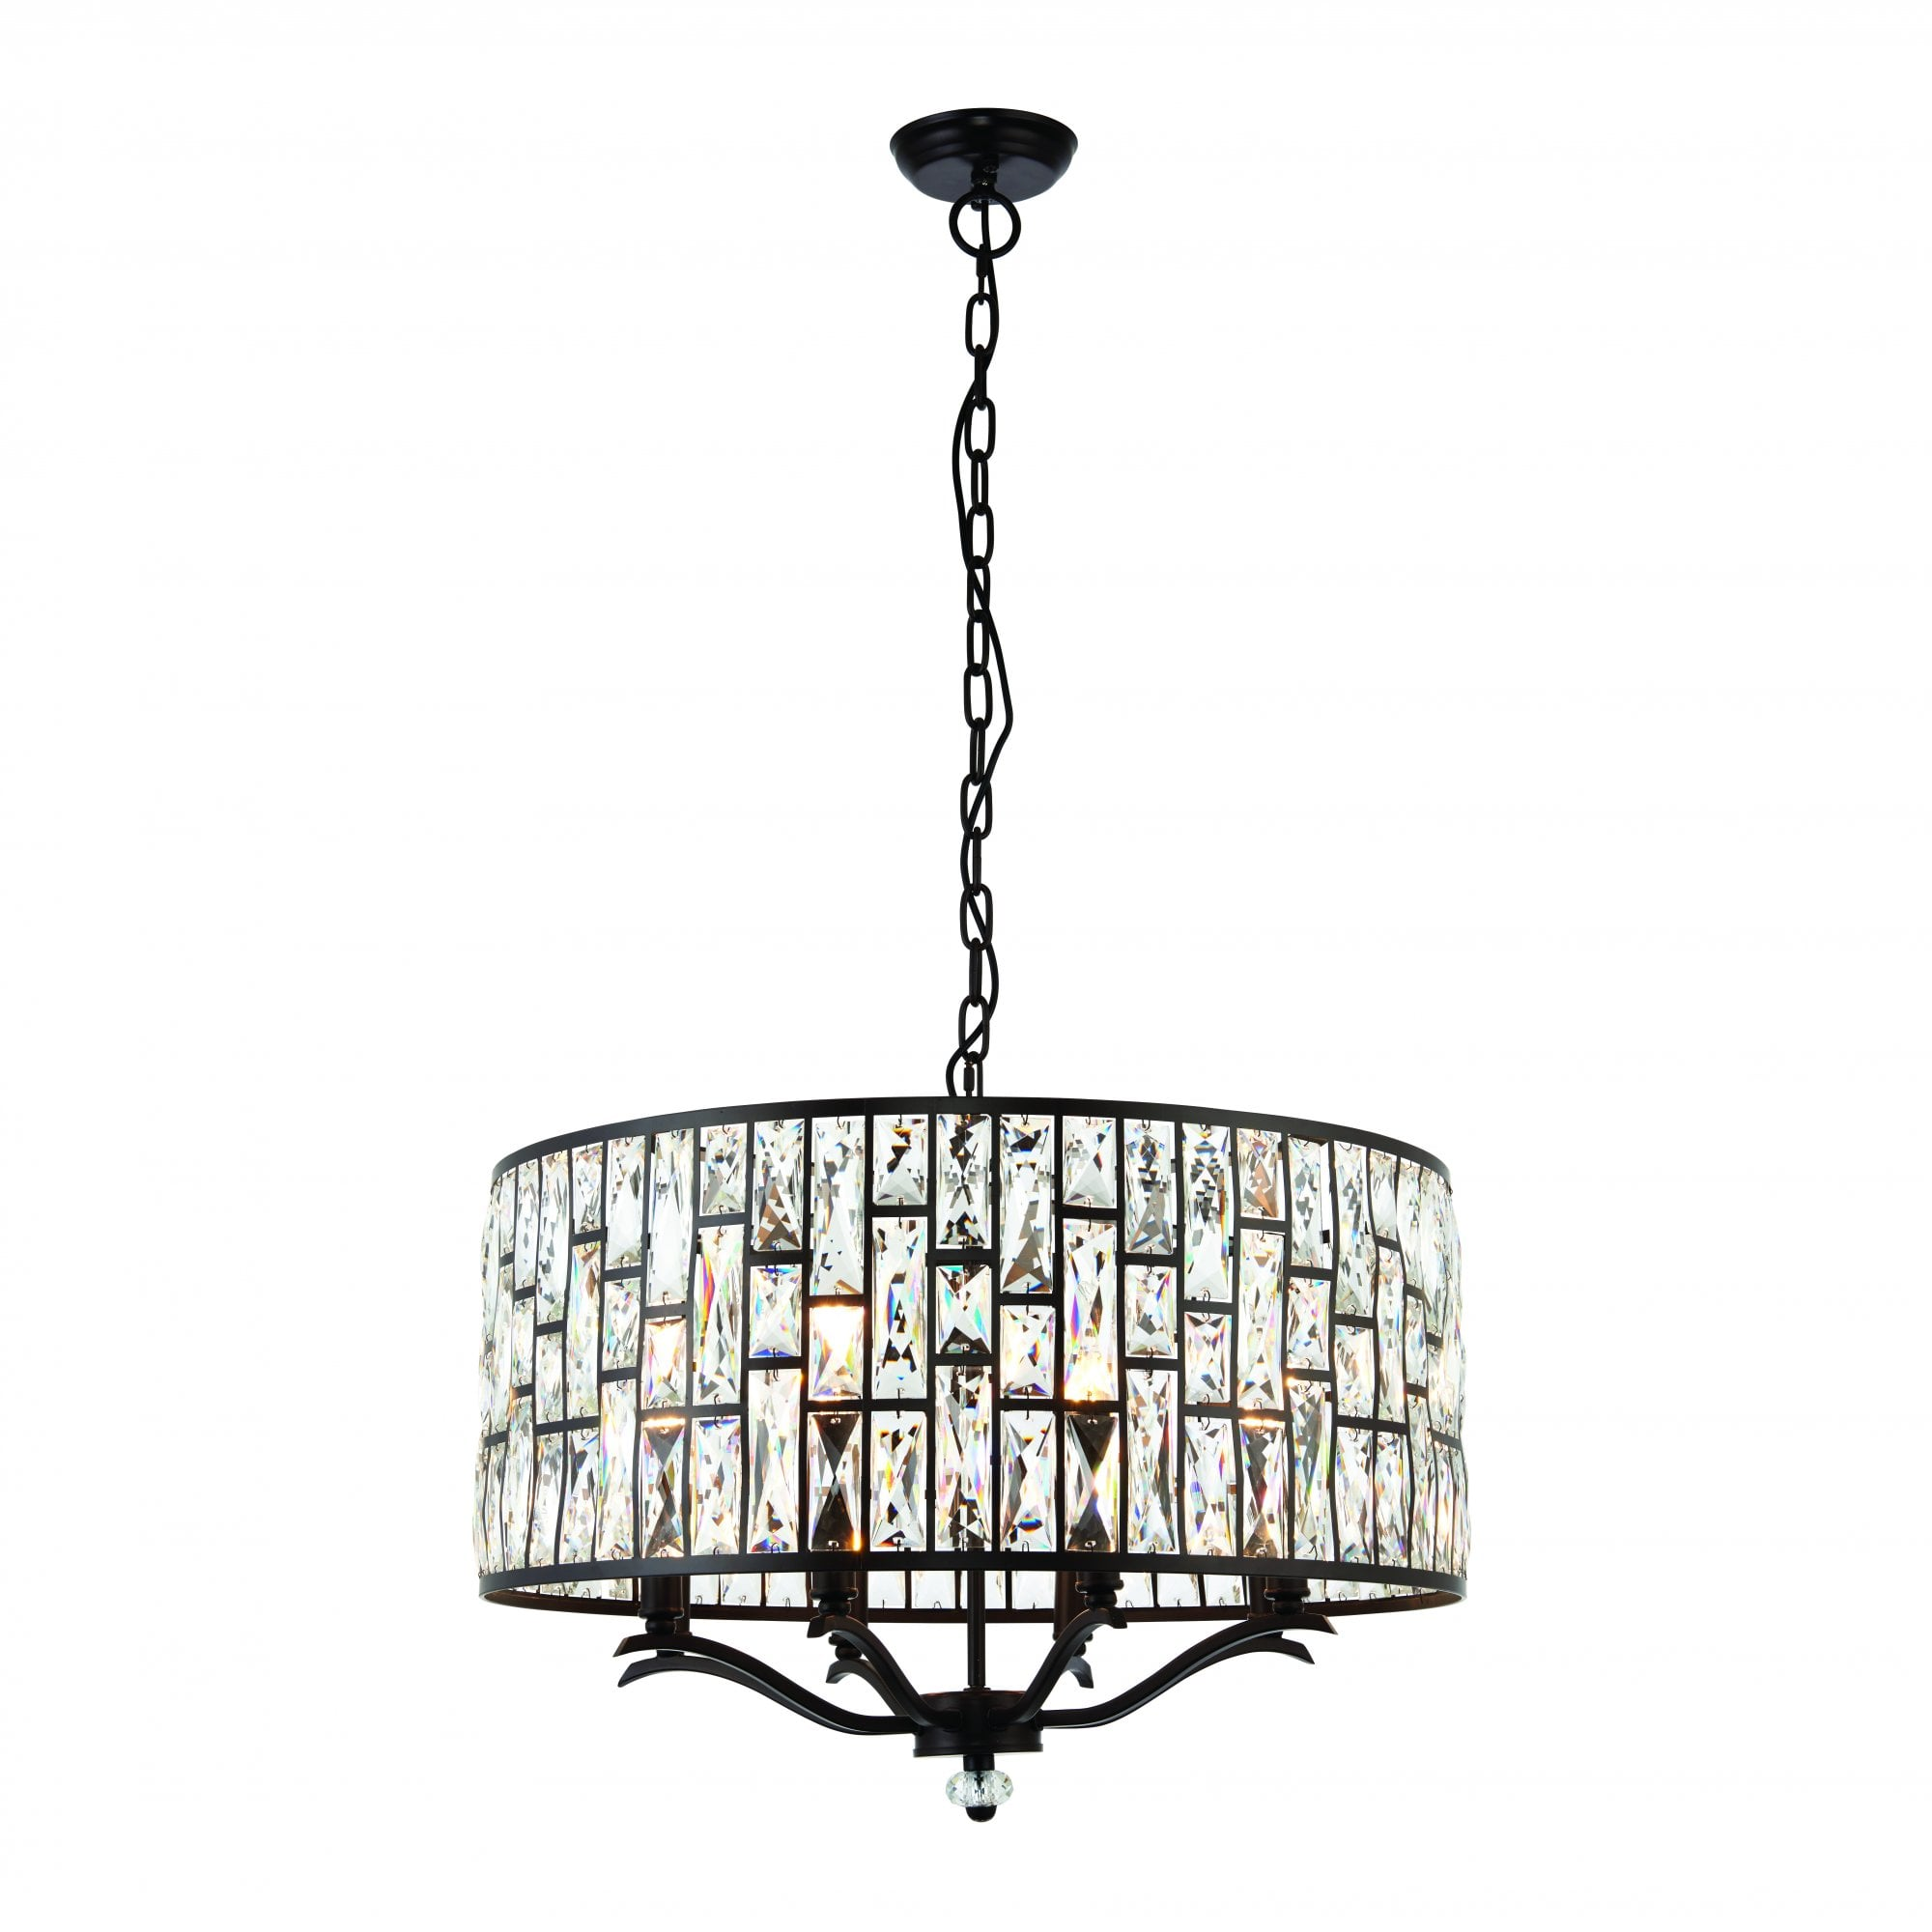 Basket Chandelier Metal Frame Skeleton Make Your Own